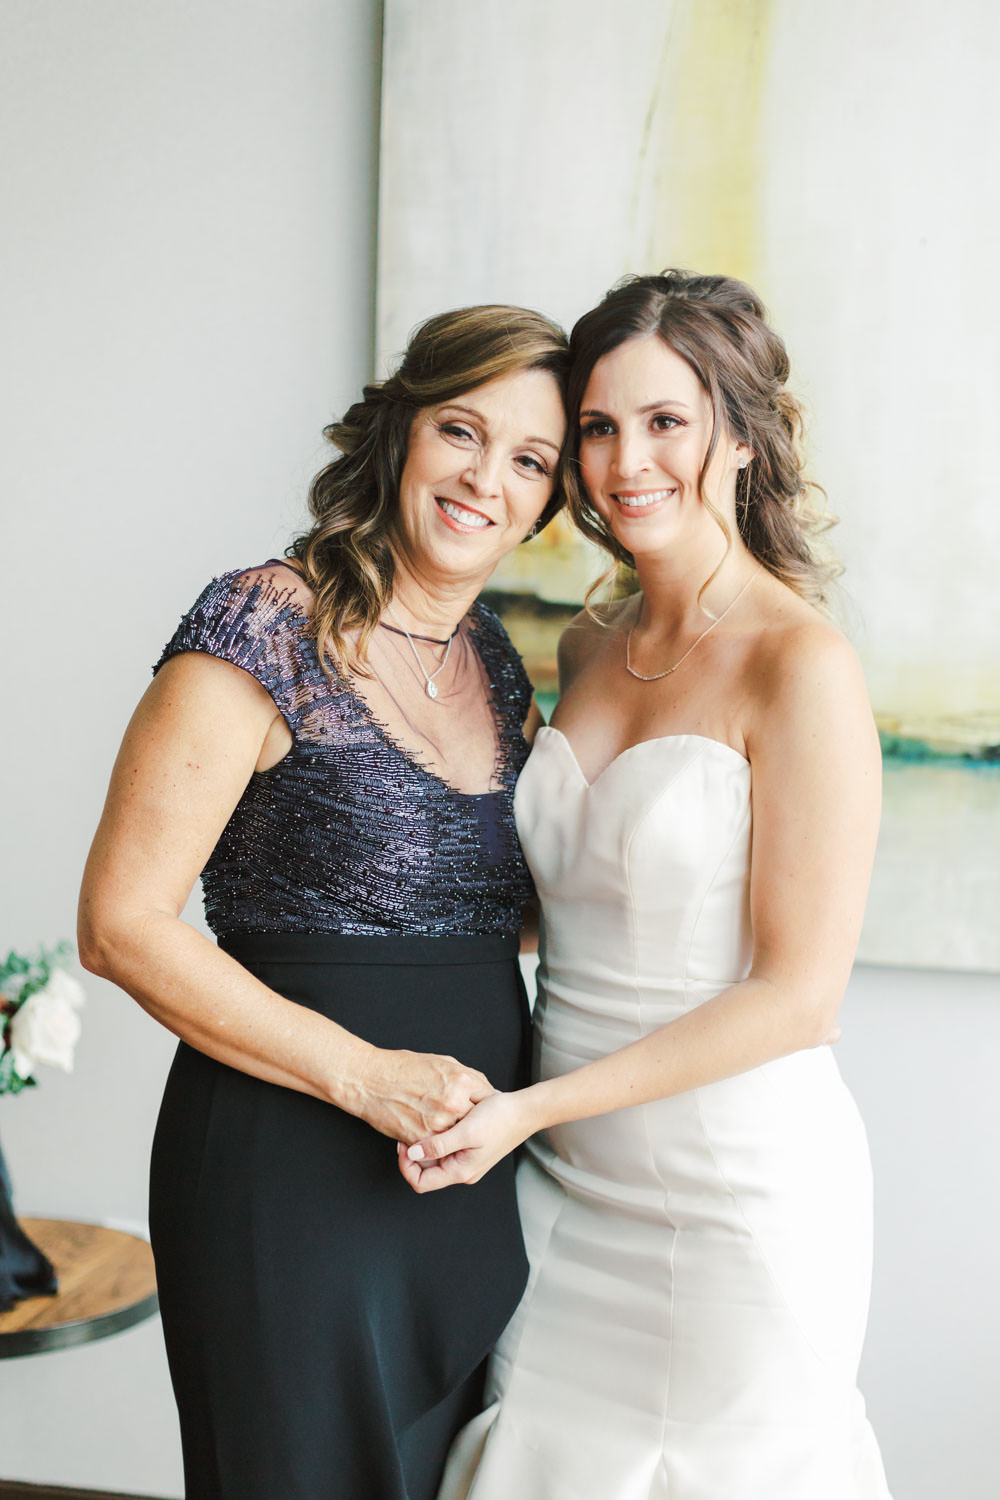 Bride with her mother before the wedding, photo by Cavin Elizabeth Photography